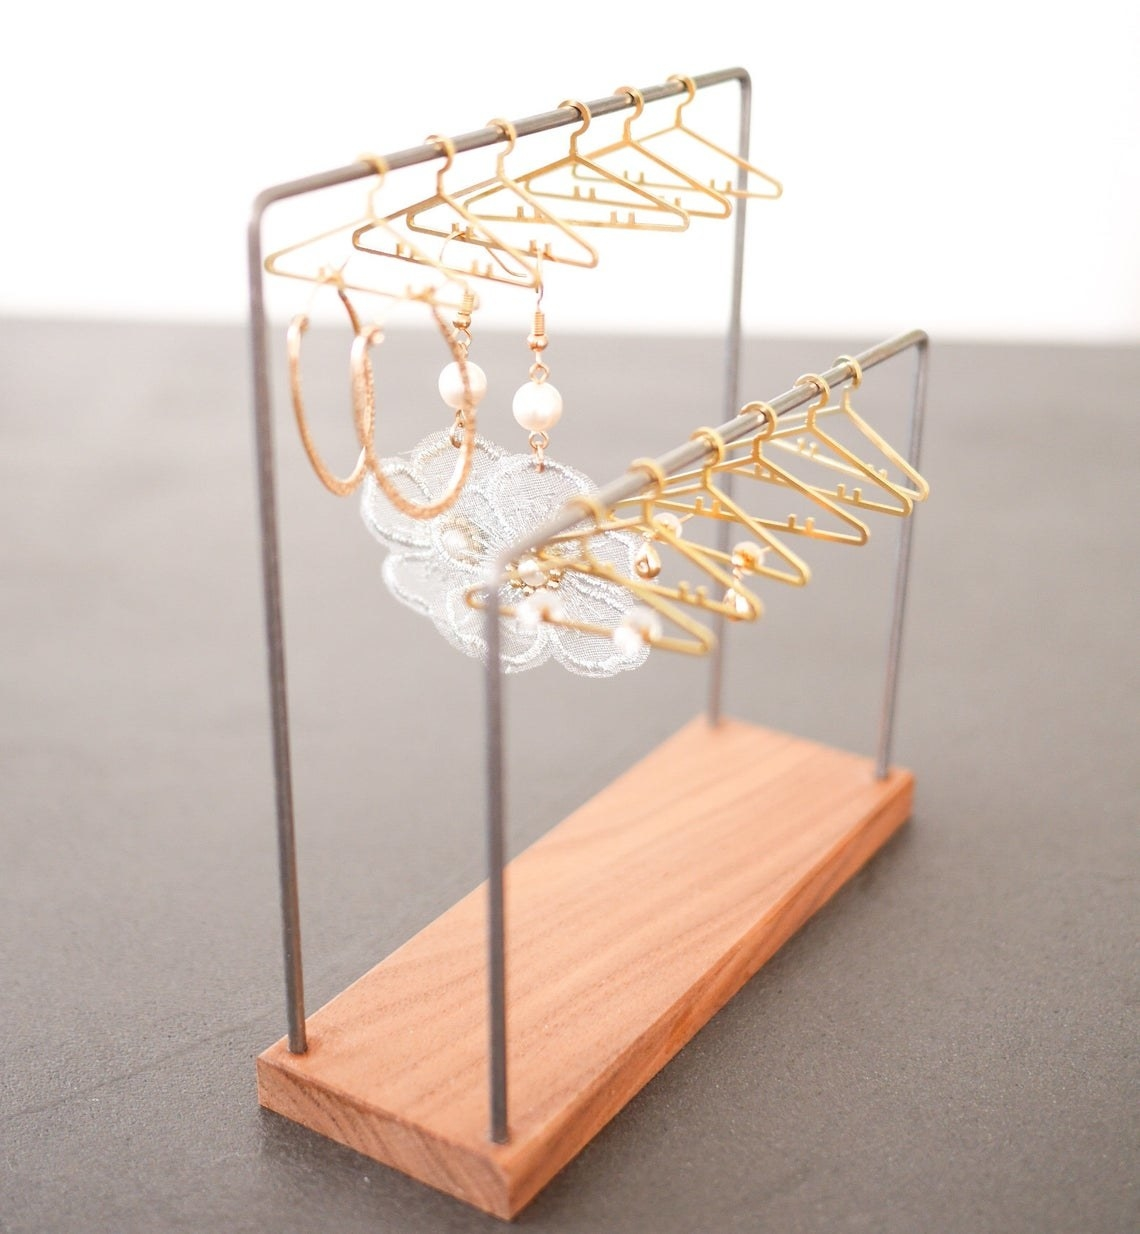 two bars with small gold hangers and earrings hanging from them